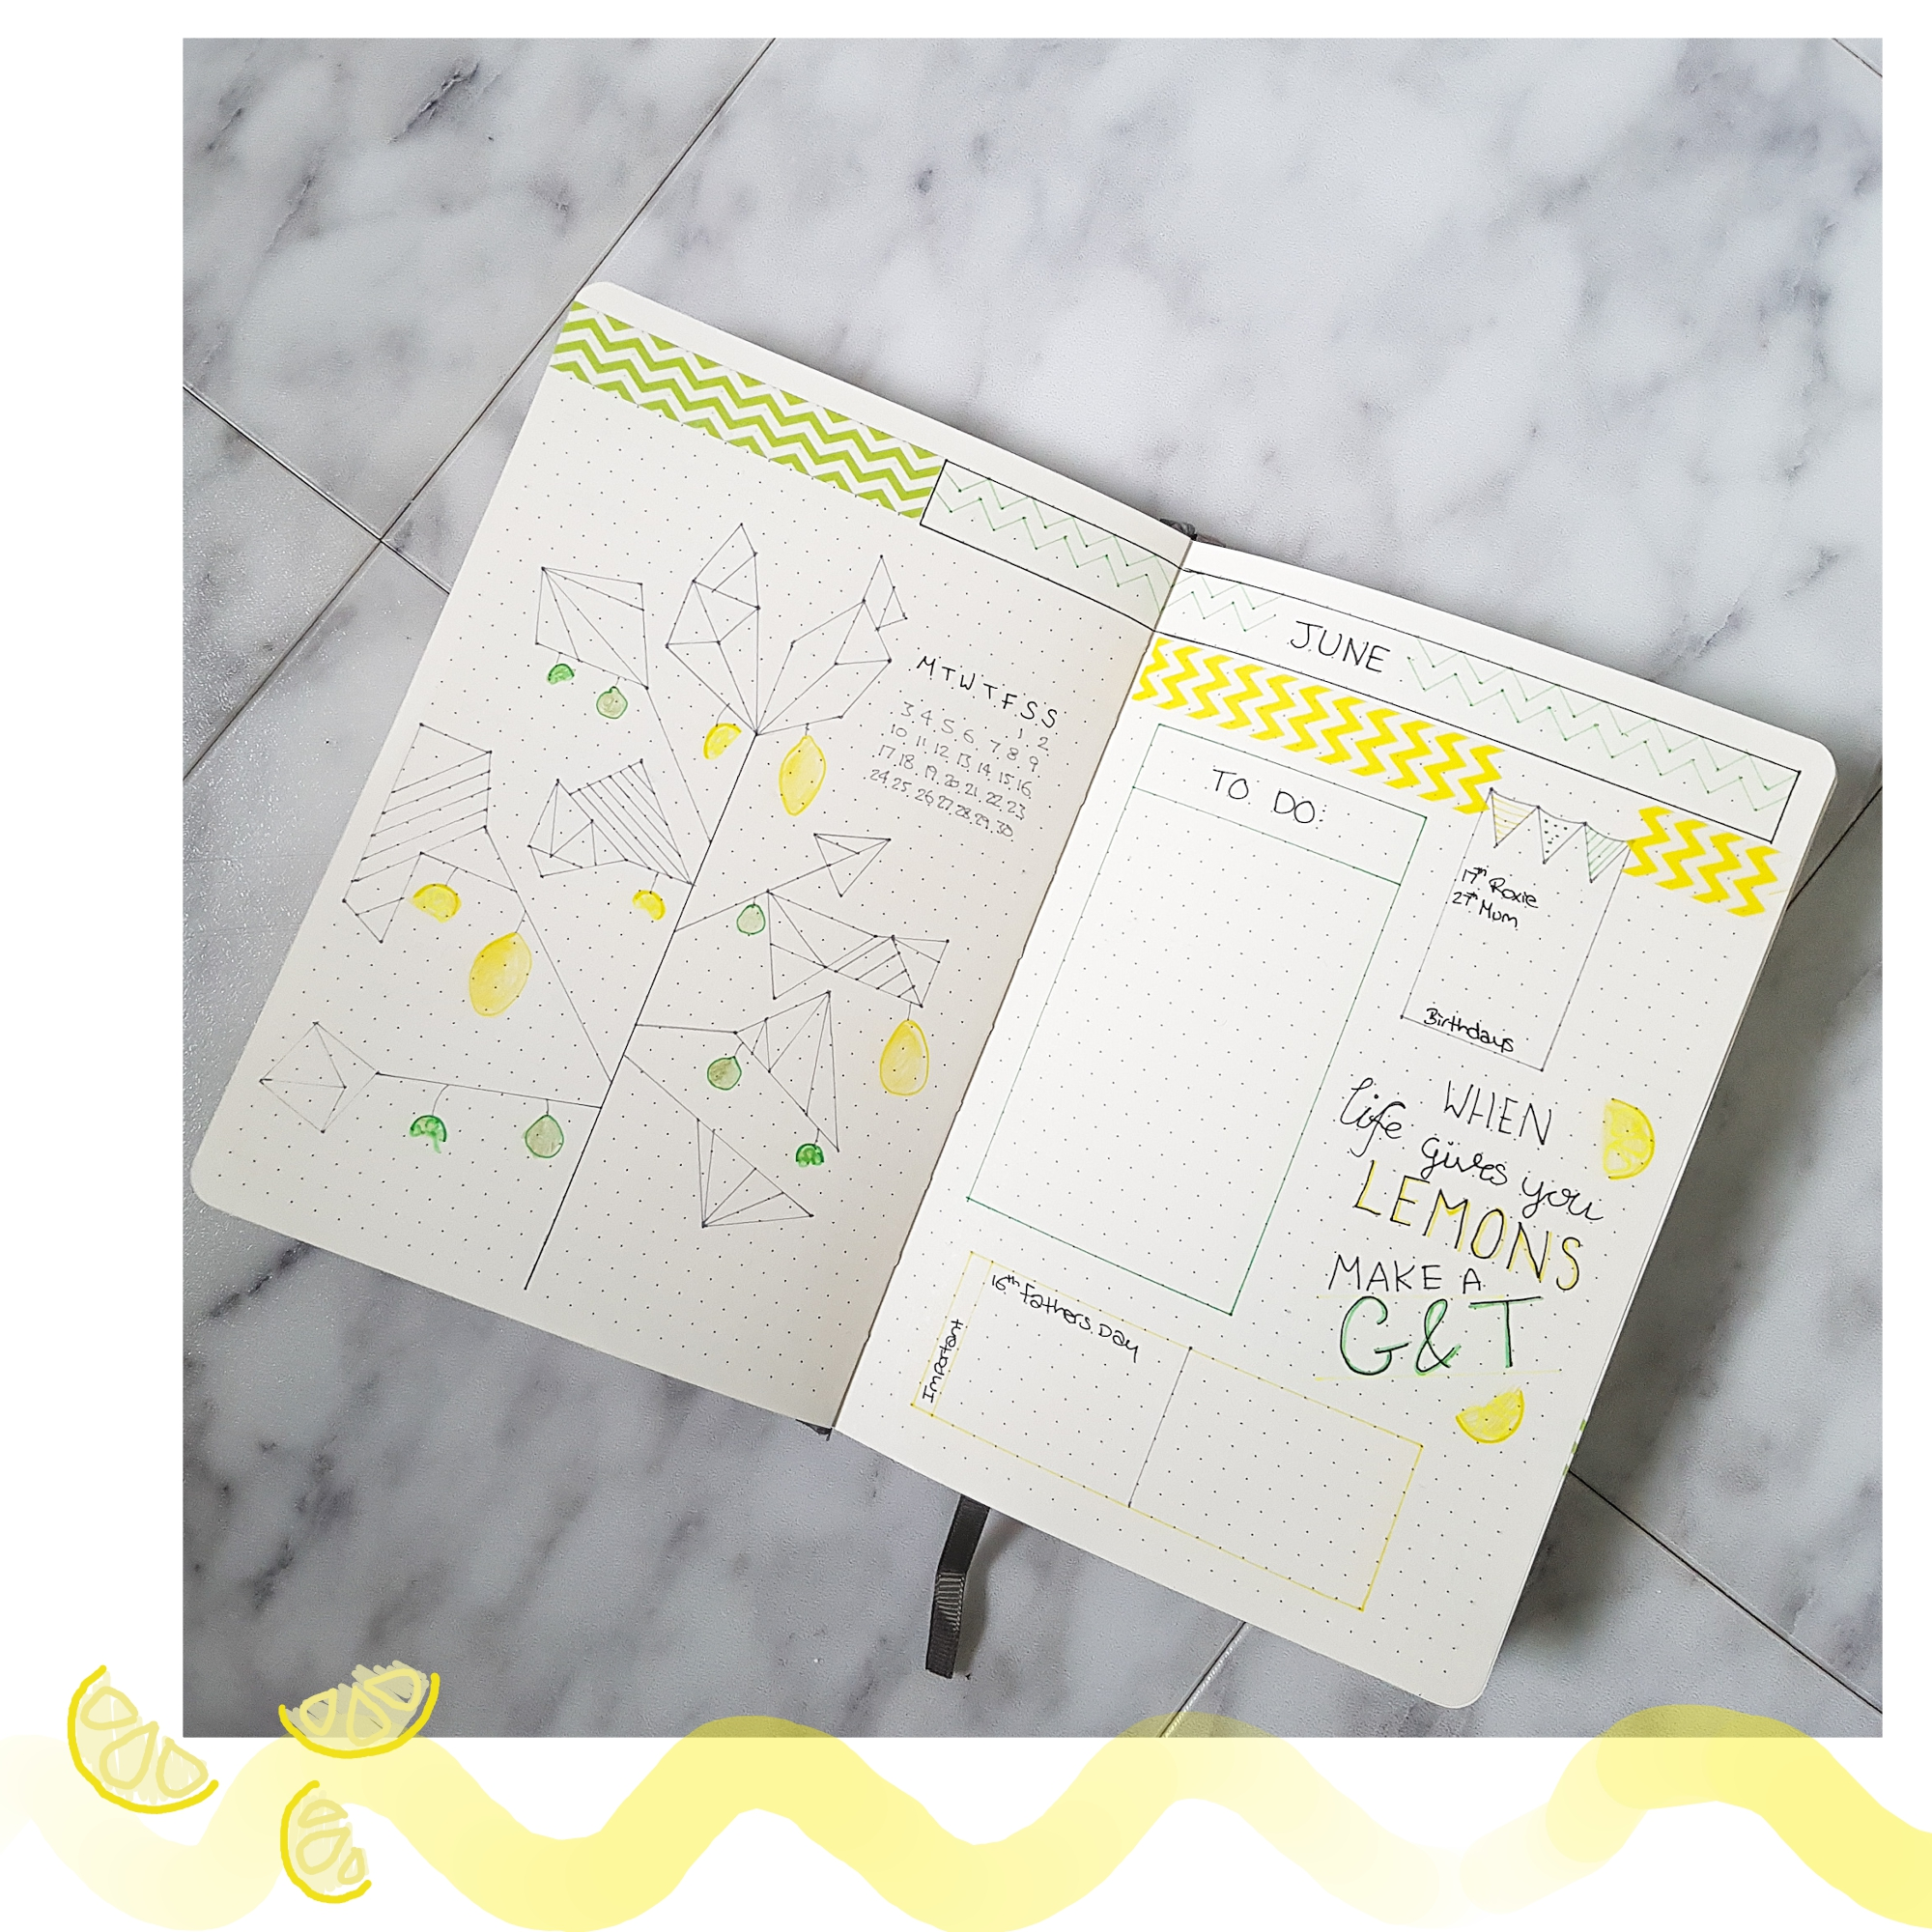 https://talilifestyle.com/2019/06/05/bullet-journal-june/